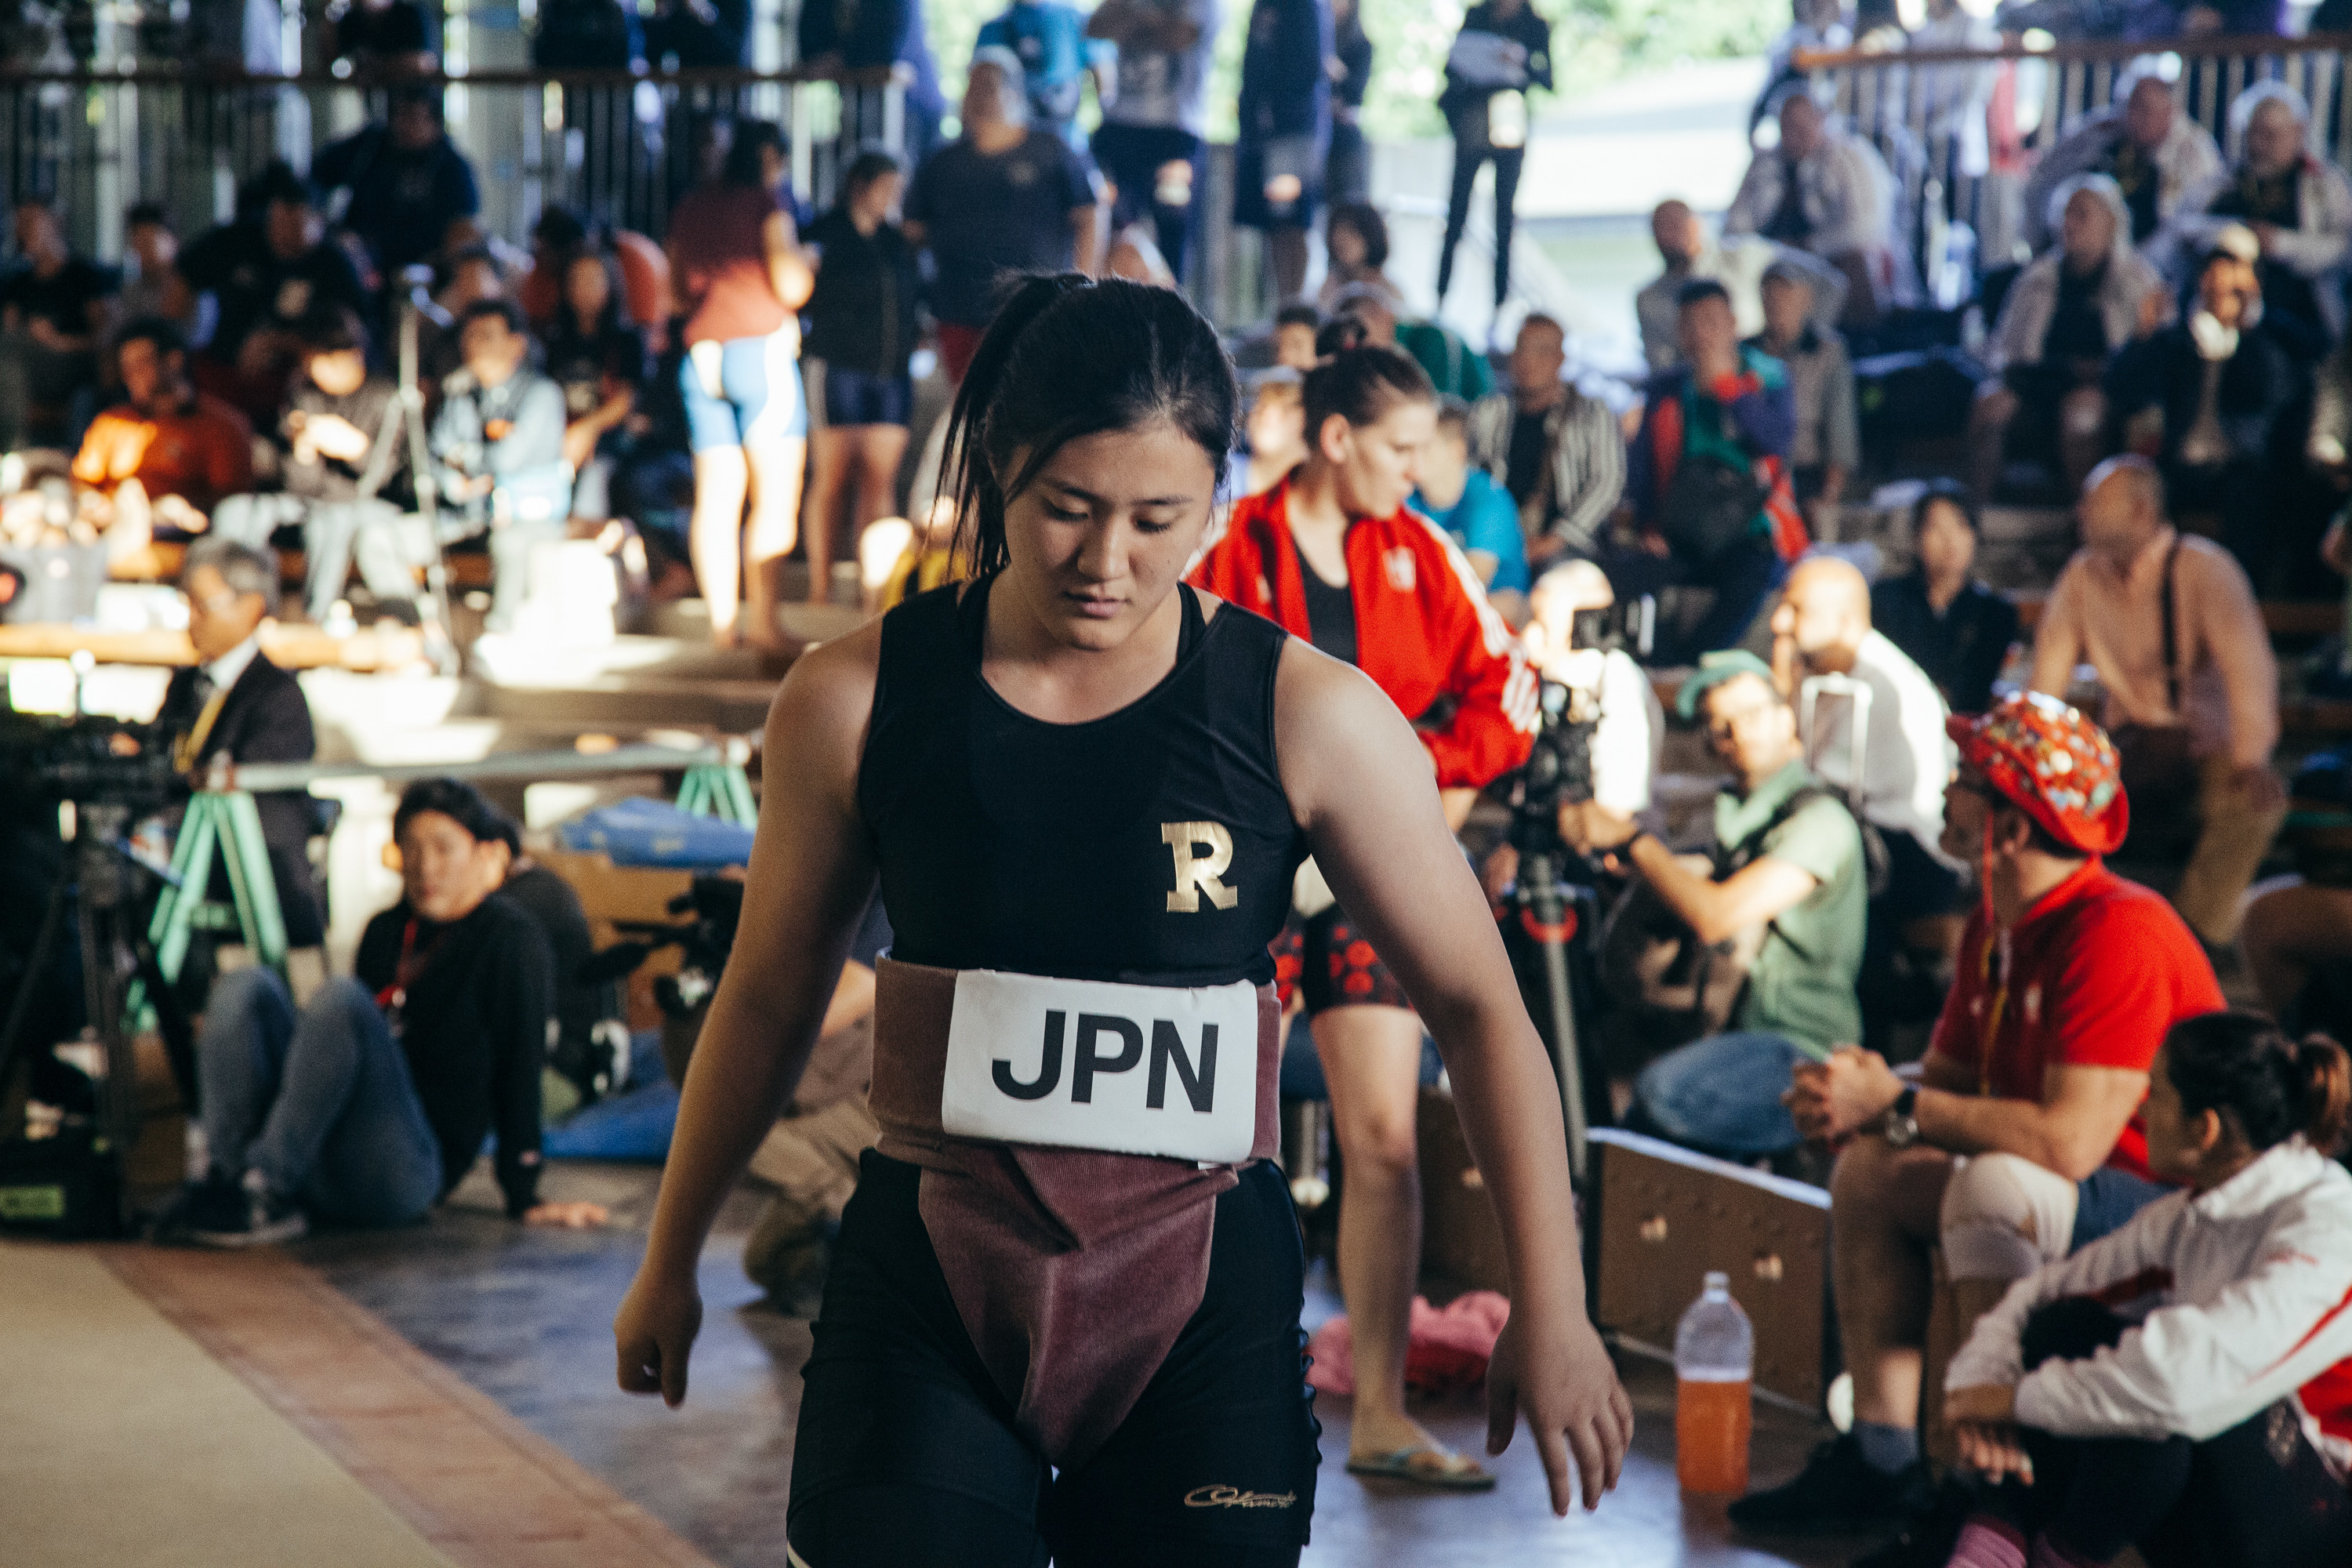 a female sumo wrestler in front of the crowd with a Japan country label